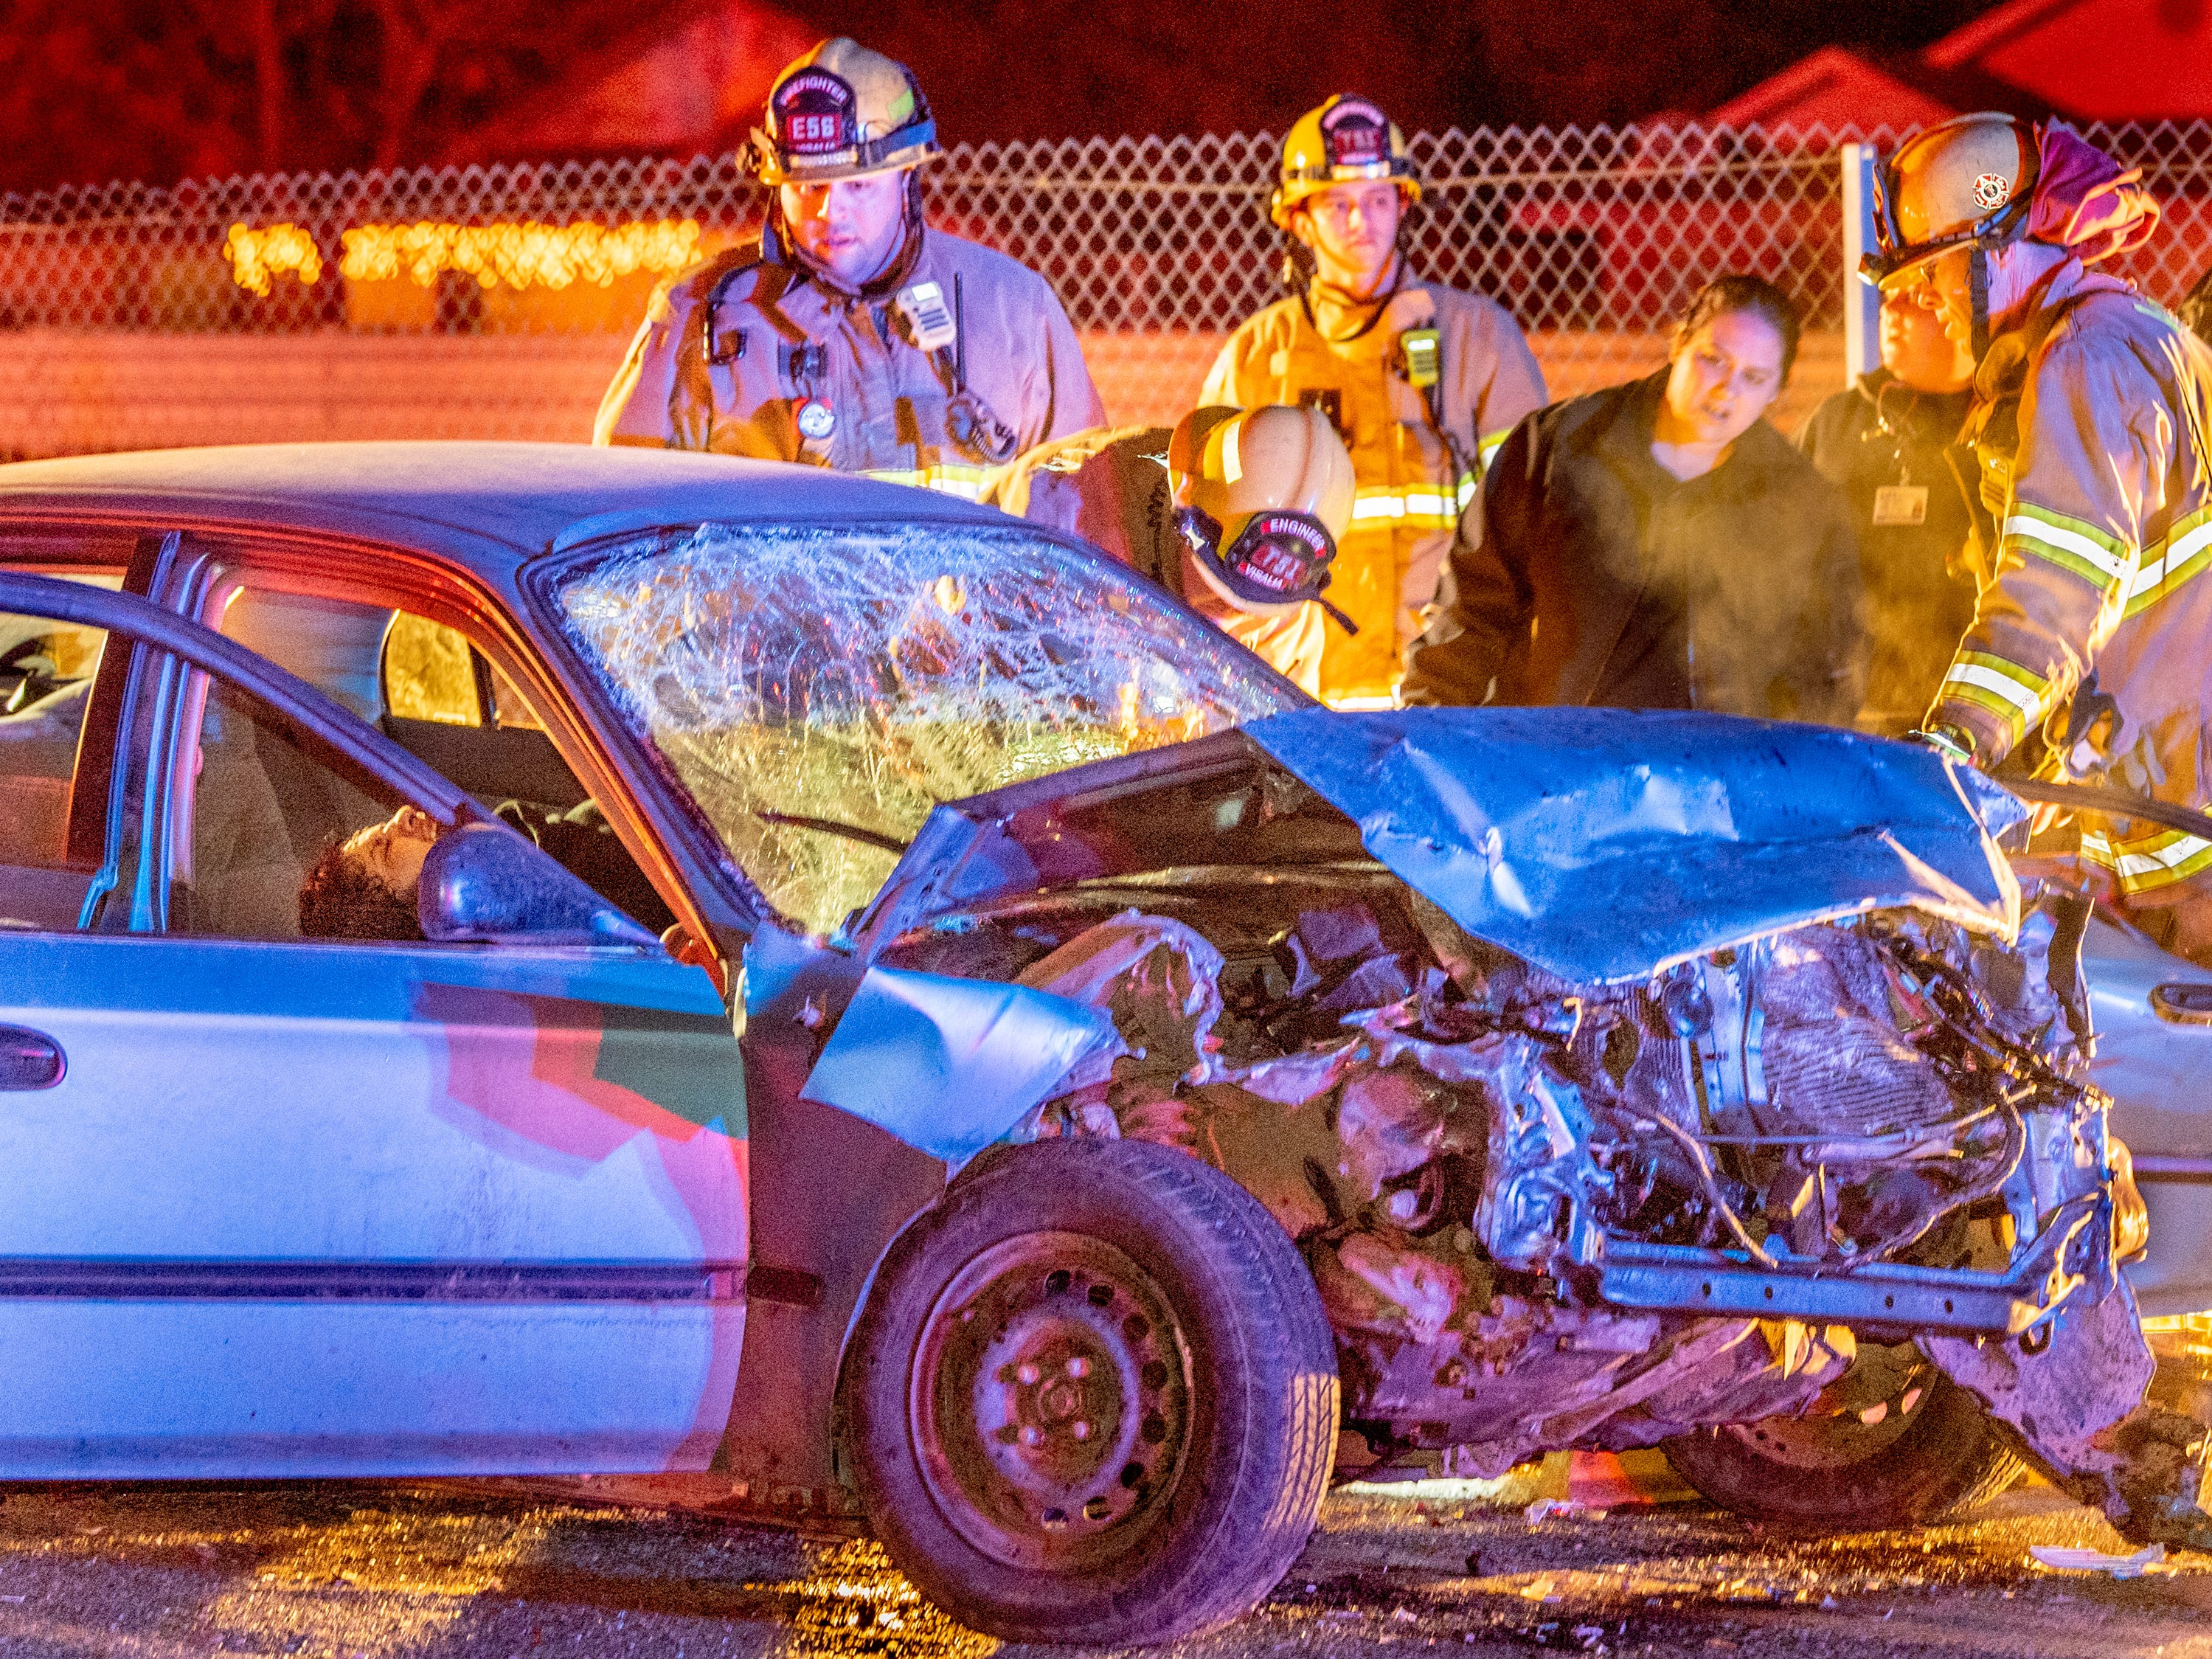 Alcohol and speed factors in 3-car collision that sent 4 to Visalia hospital